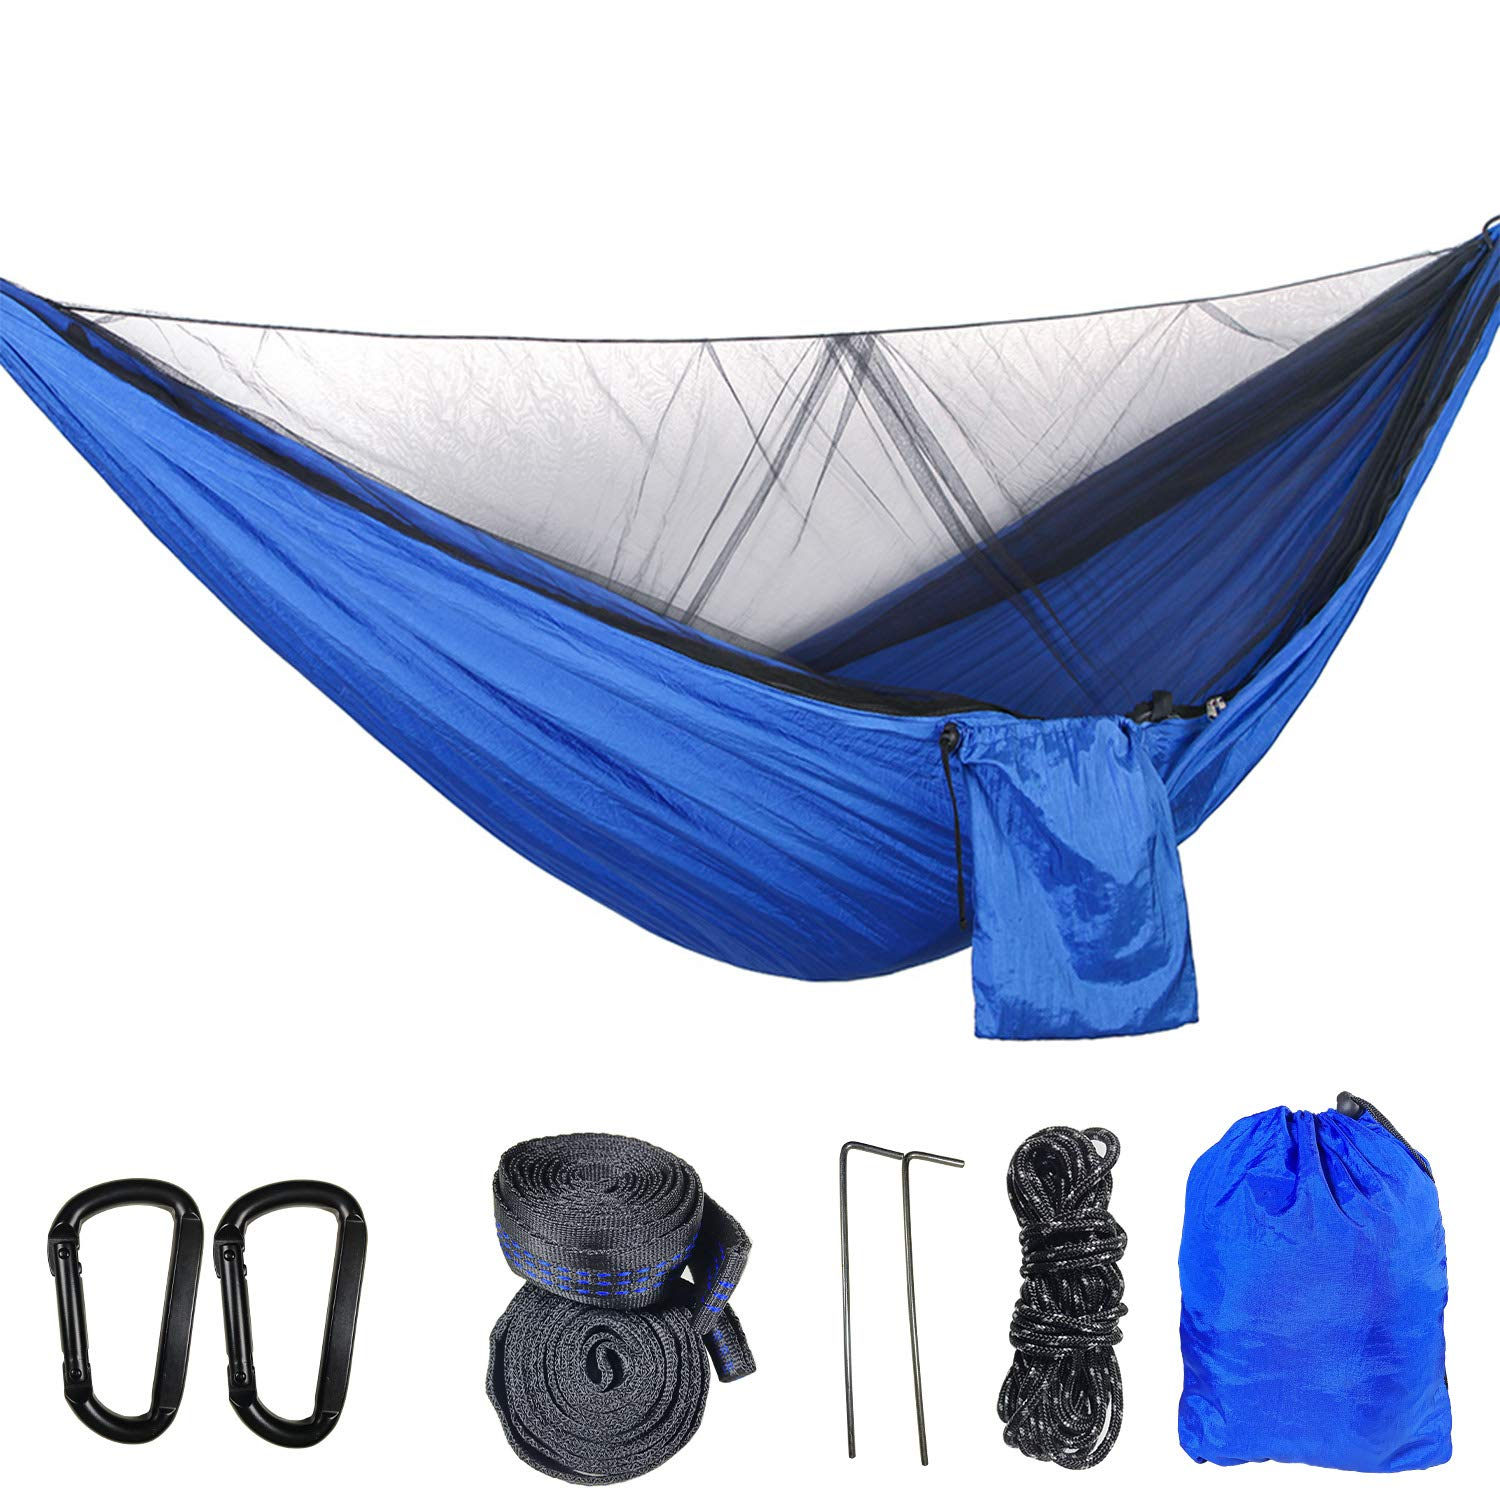 Camping Hammock,Lightweight Parachute Nylon Hammock, Suitable for Indoor, Outdoor, Hiking, Camping, Backyard, Beach, Backpacking (Blue)